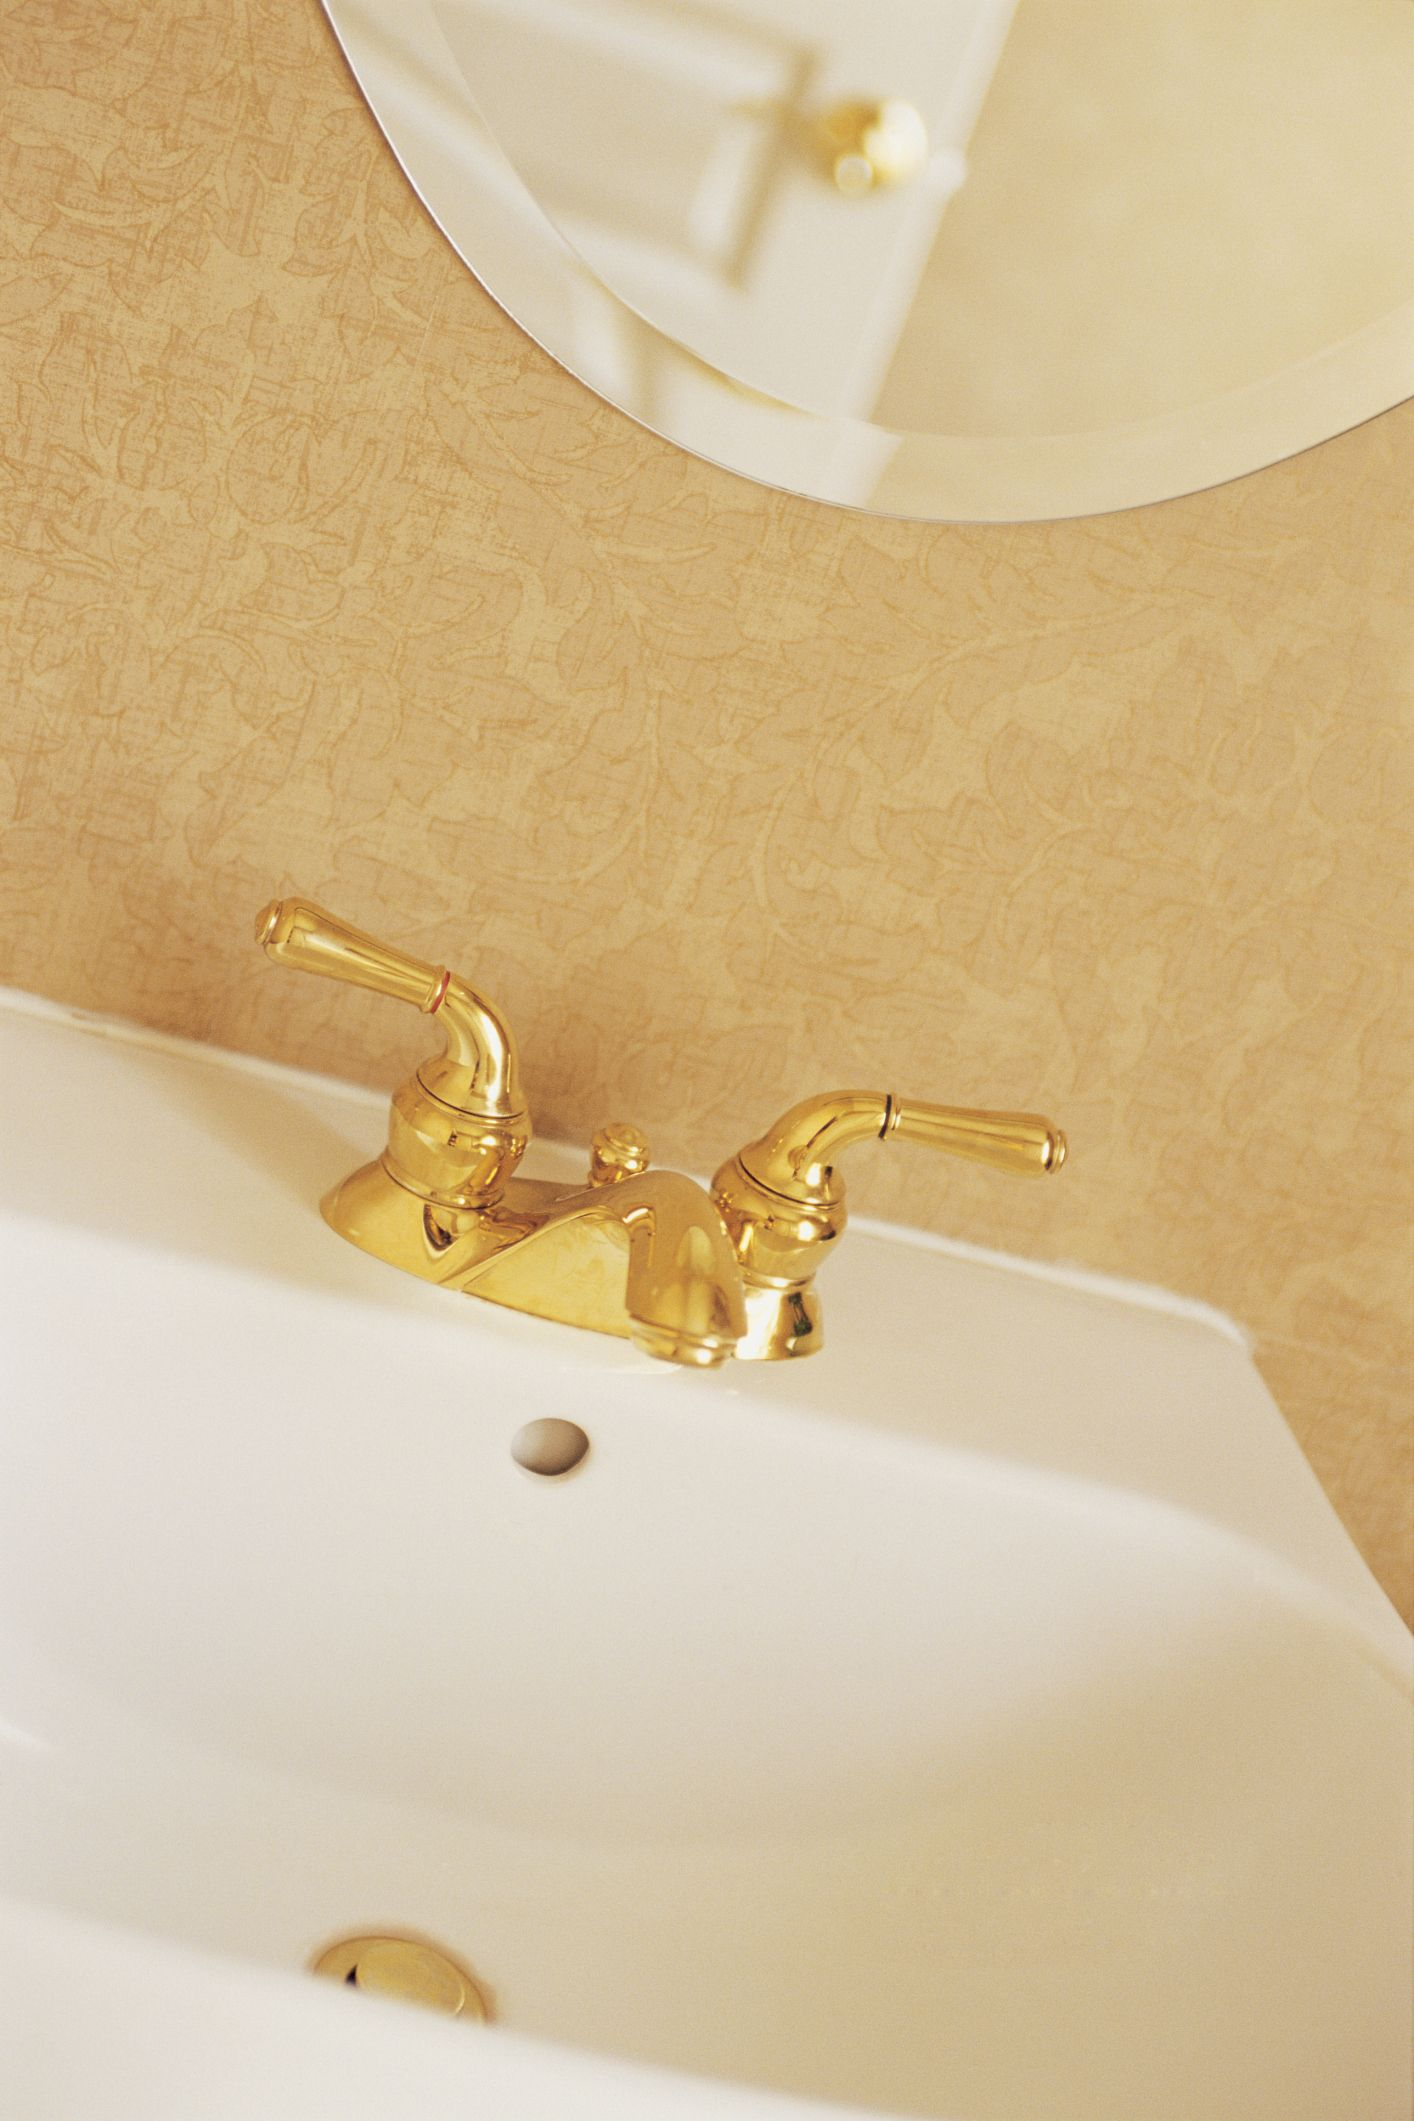 How To Get Rid Of The Smell From The Bathroom Sink Overflow Bathroom Sink Cleaning Sink Drains Clean Bathroom Sink